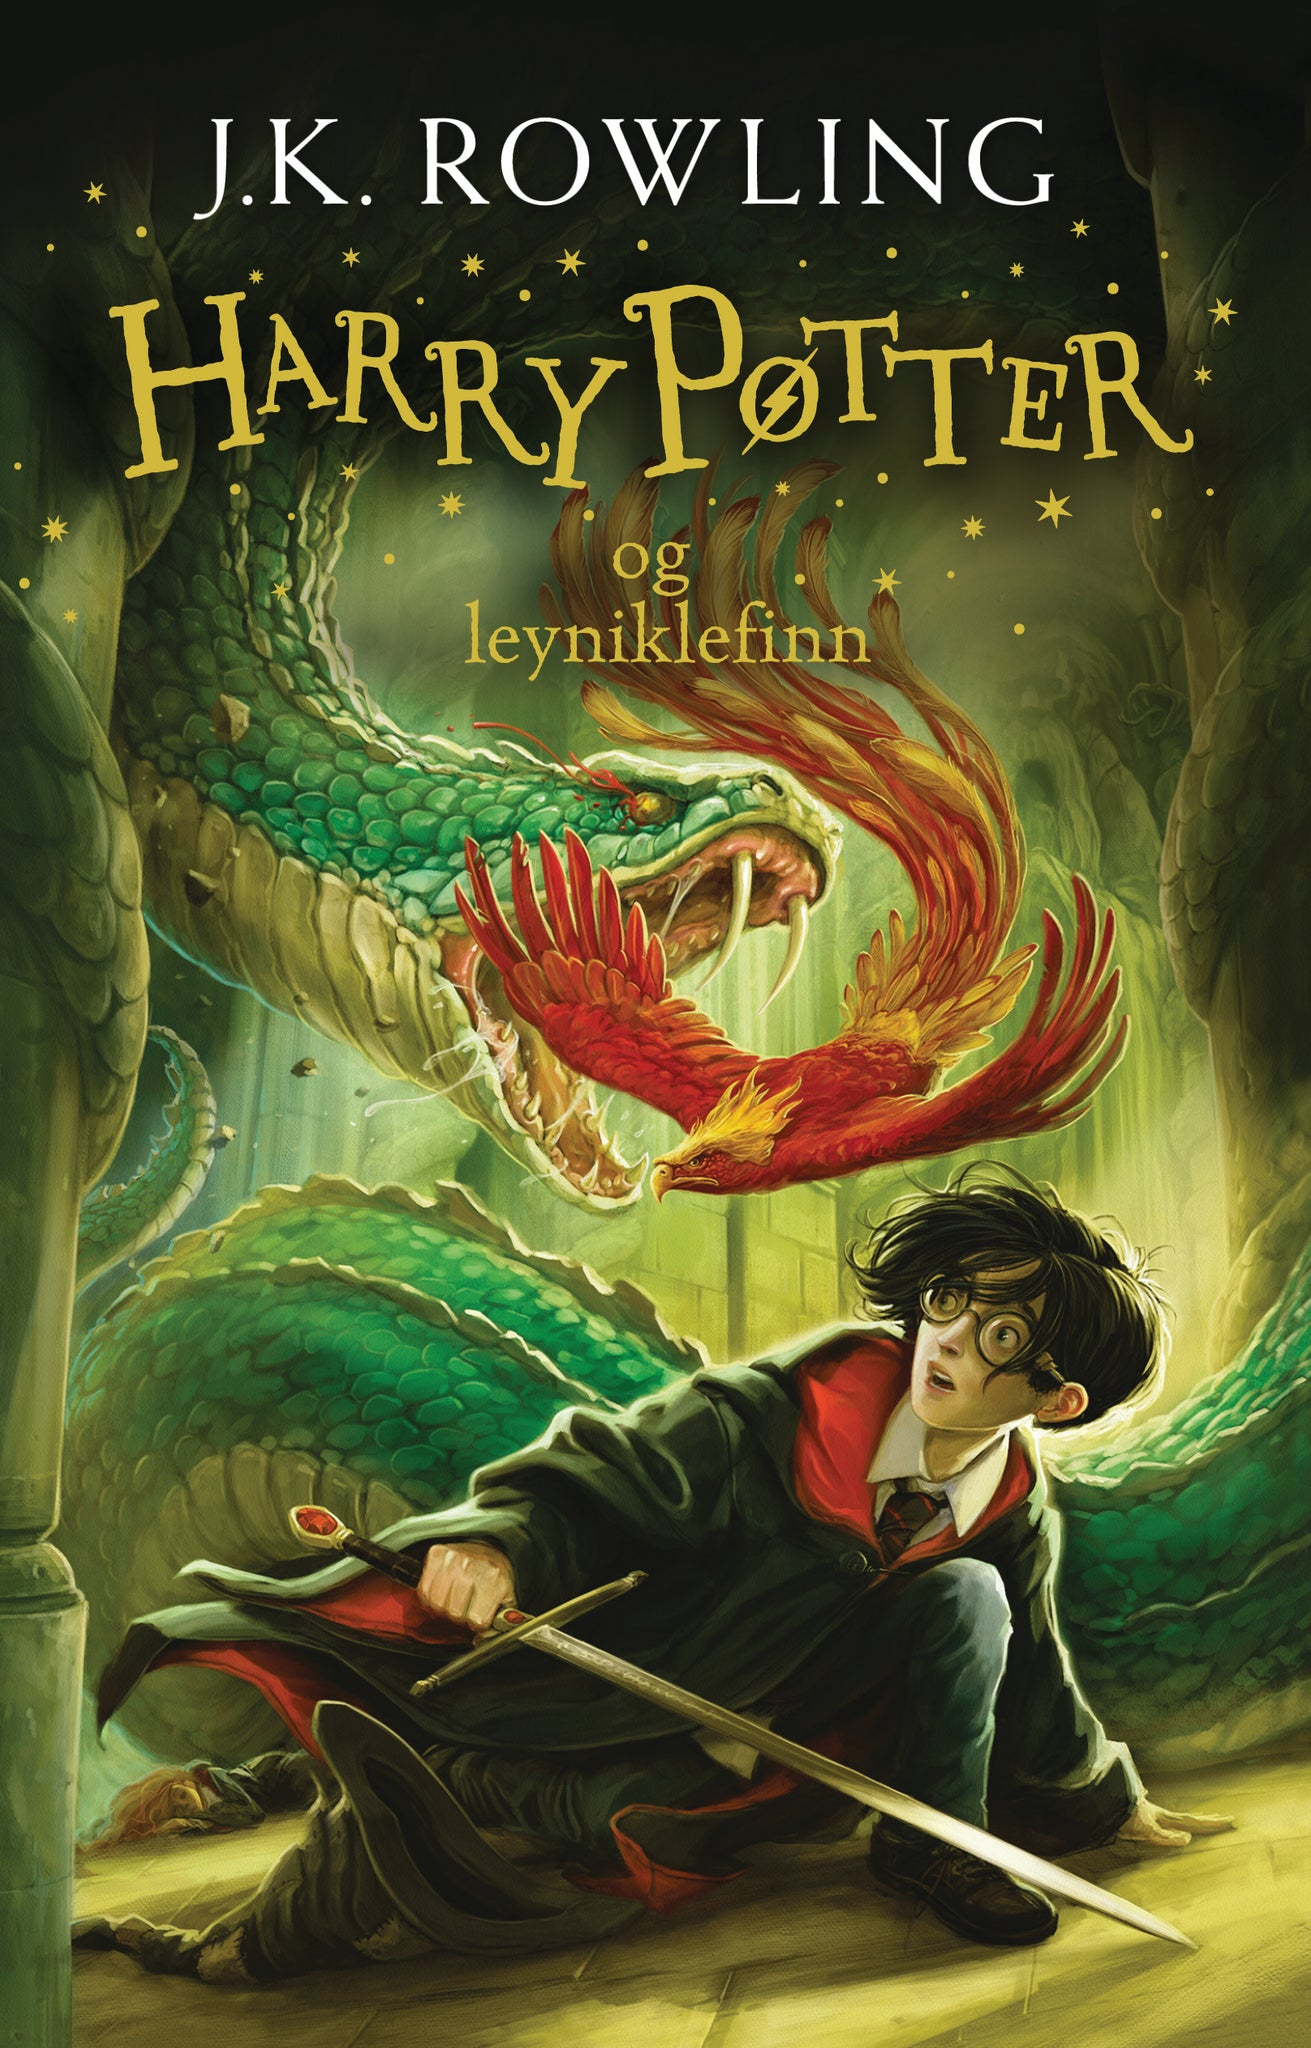 Harry Potter og leyniklefinn